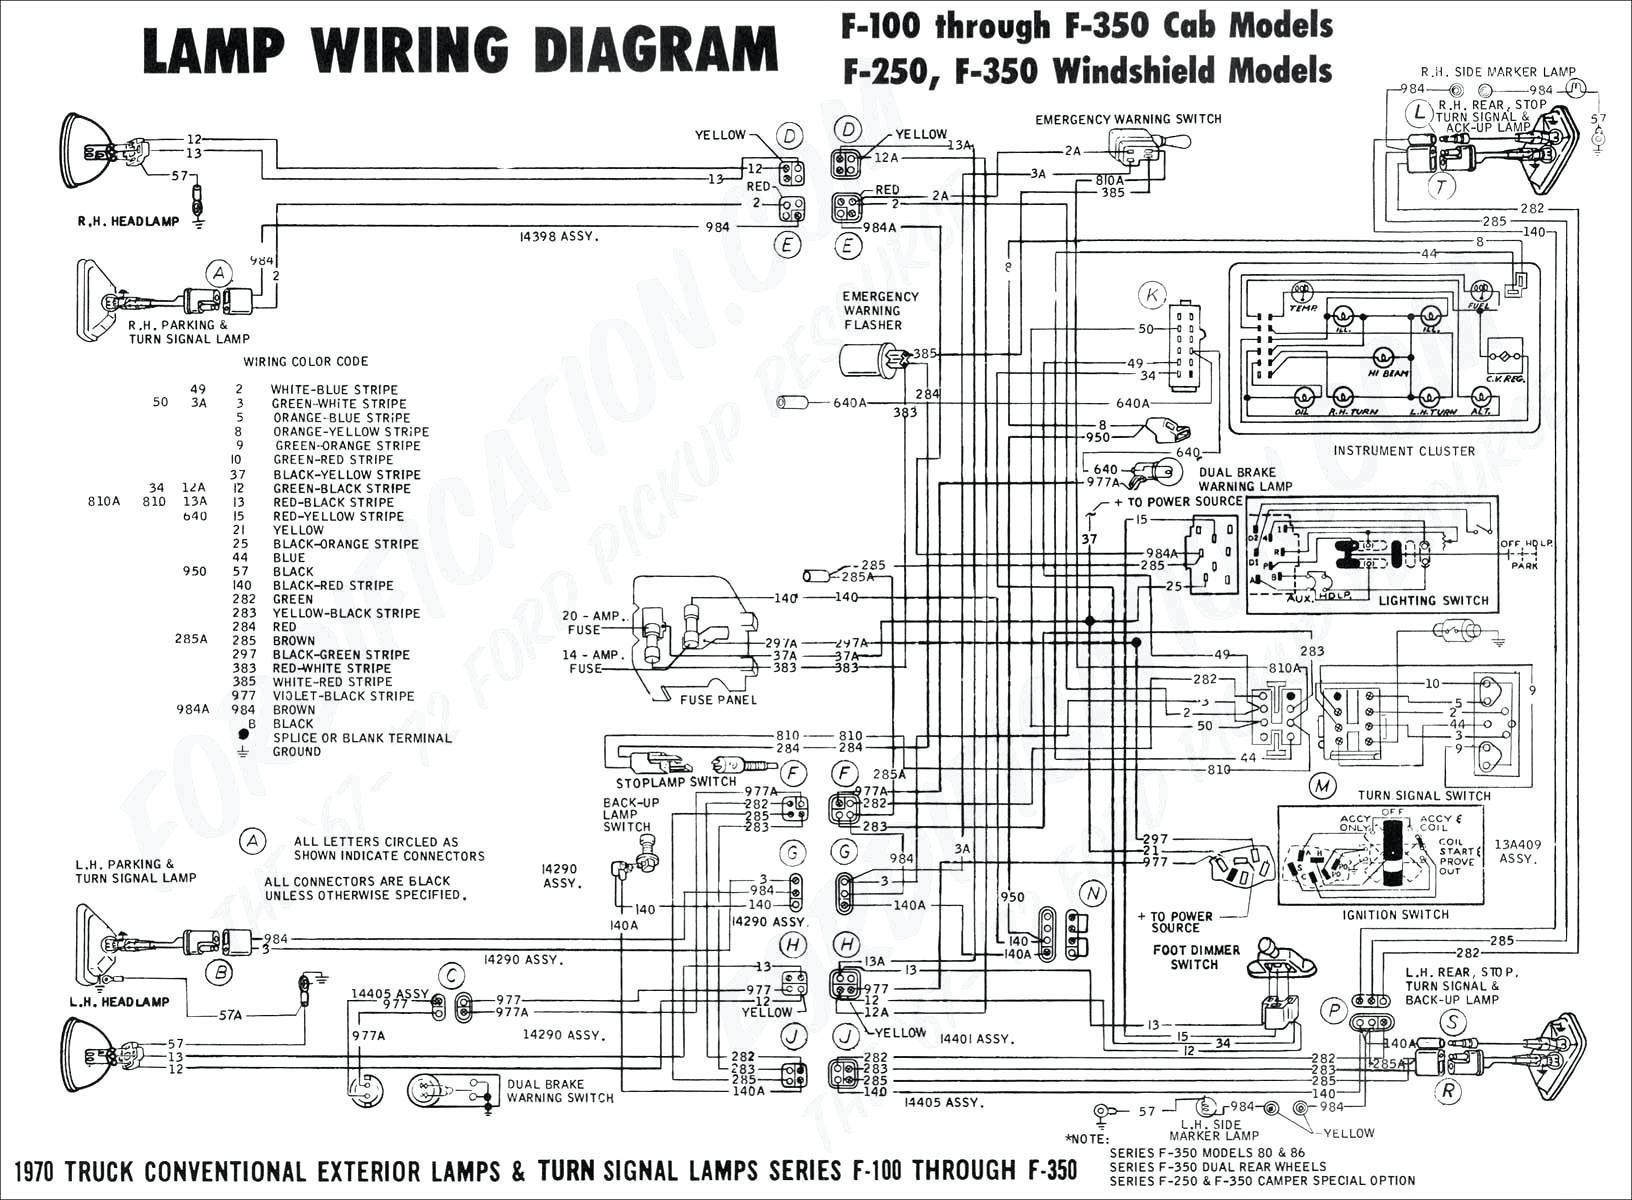 1996 Dodge Ram 1500 Wiring Diagram